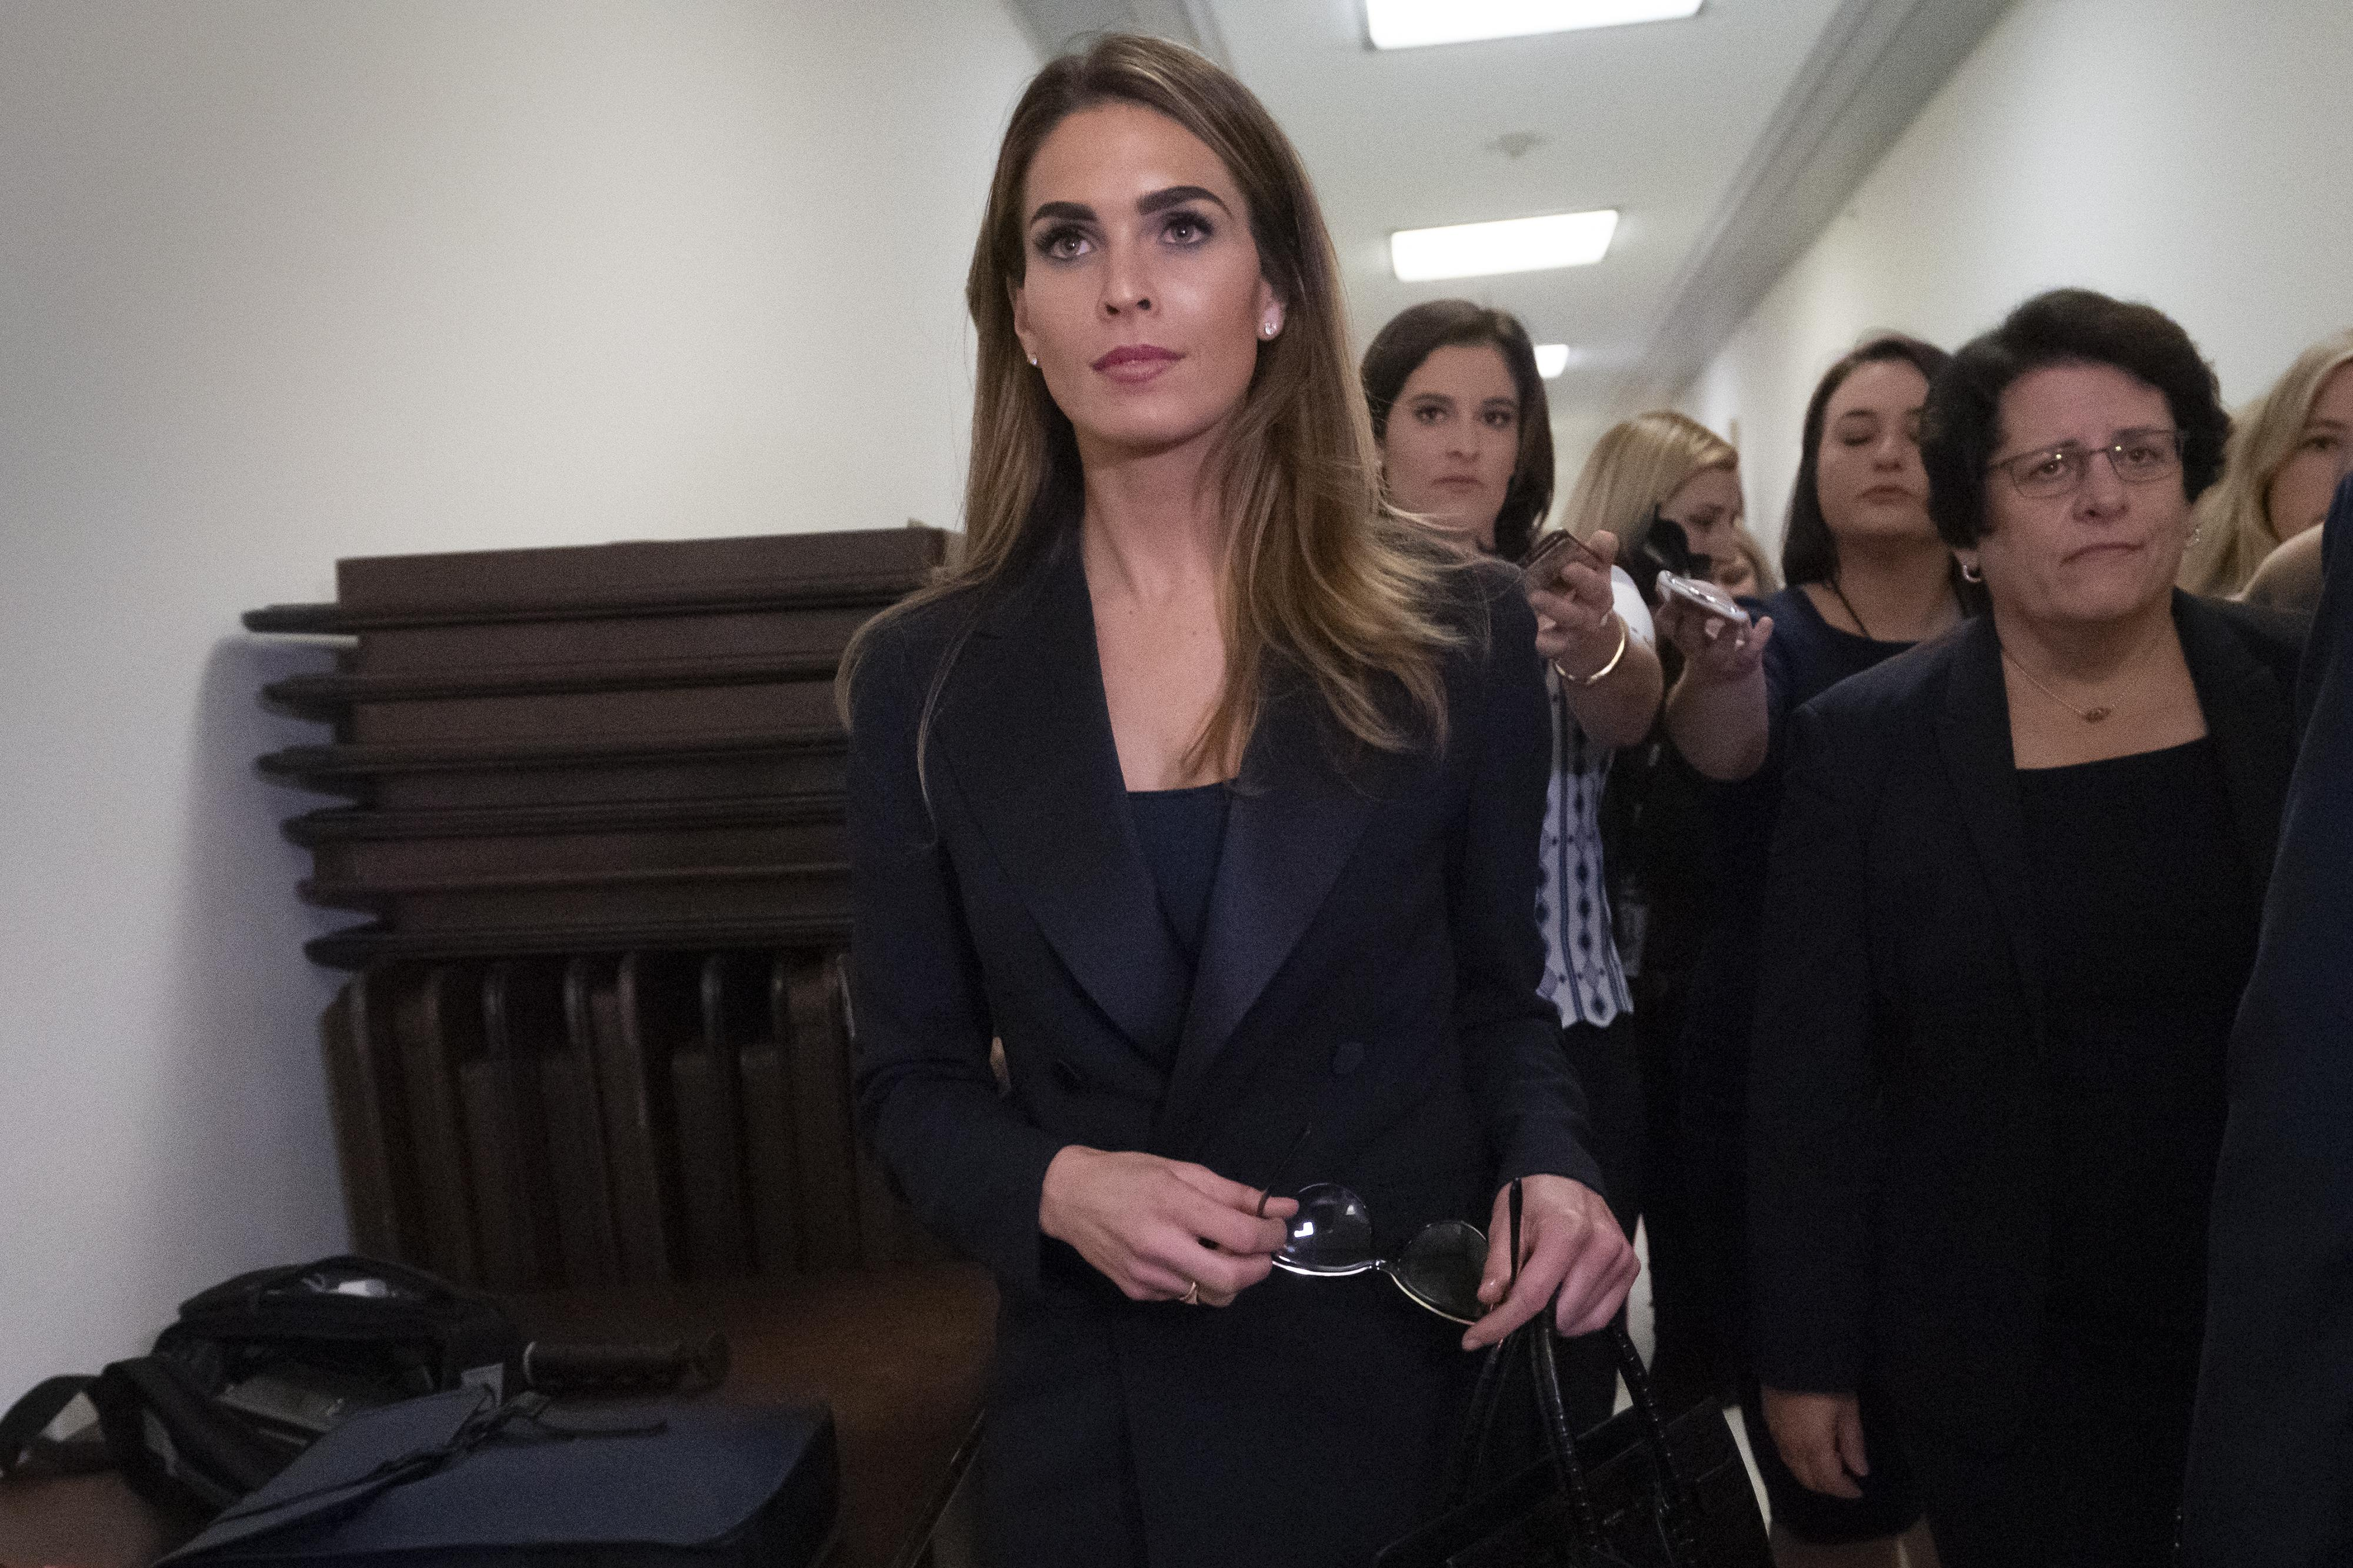 'That's a big jump': Hope Hicks tells lawmakers hacked Clinton emails didn't boost Trump campaign